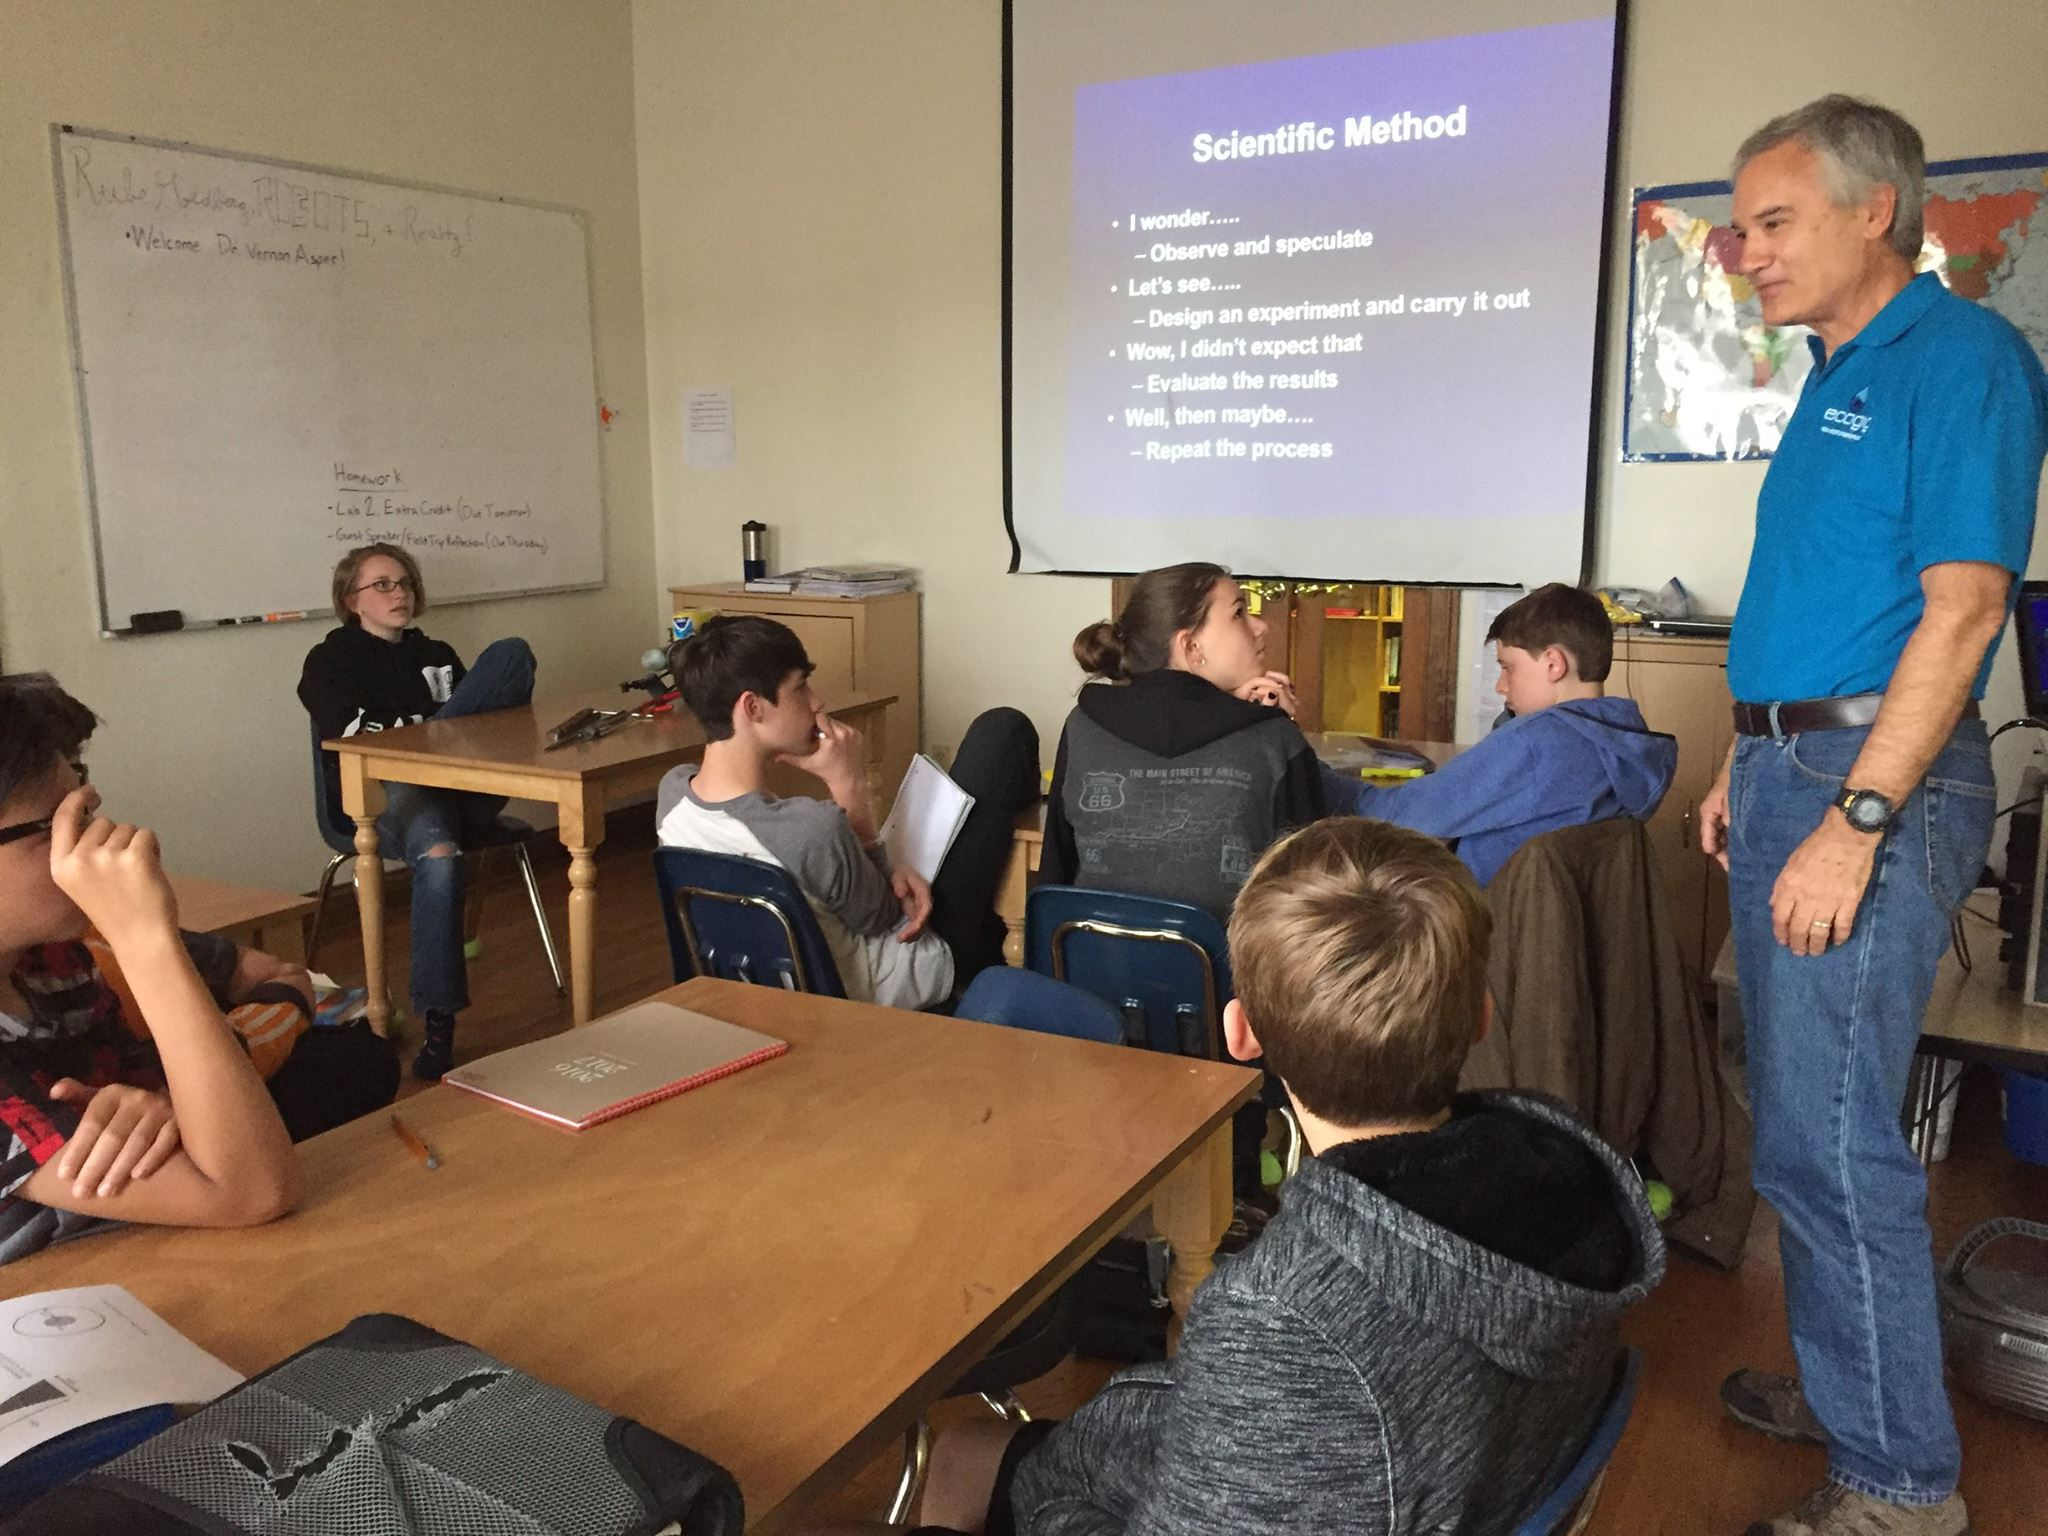 <div style='color:#000000;'><br /><br /><h2>2017 Nature's Way Montessori. ECOGIG PI Dr. Vernon Asper shared his knowledge about oceans, density & circulation with Nature's Way Montessori middle school students. Photo courtesy of Vernon Asper.</h2></div>